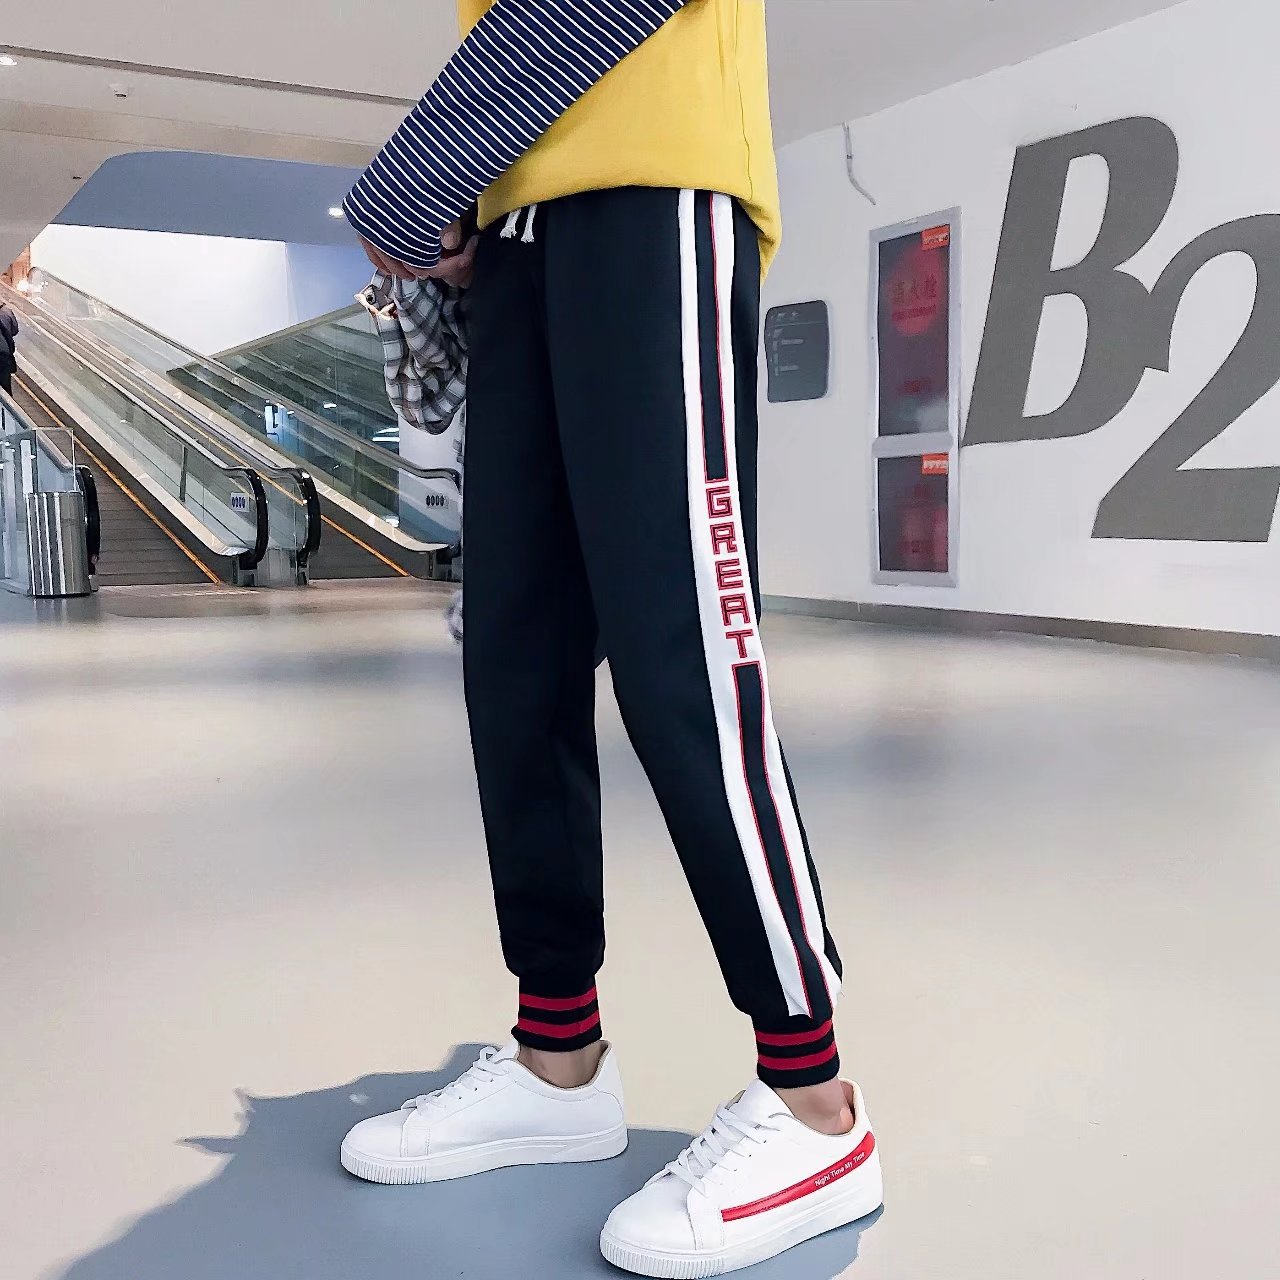 2018 Summer New Style Fashion-Elastic Waist Athletic Pants College Style Side Stripes English Printed MEN'S Casual Pants